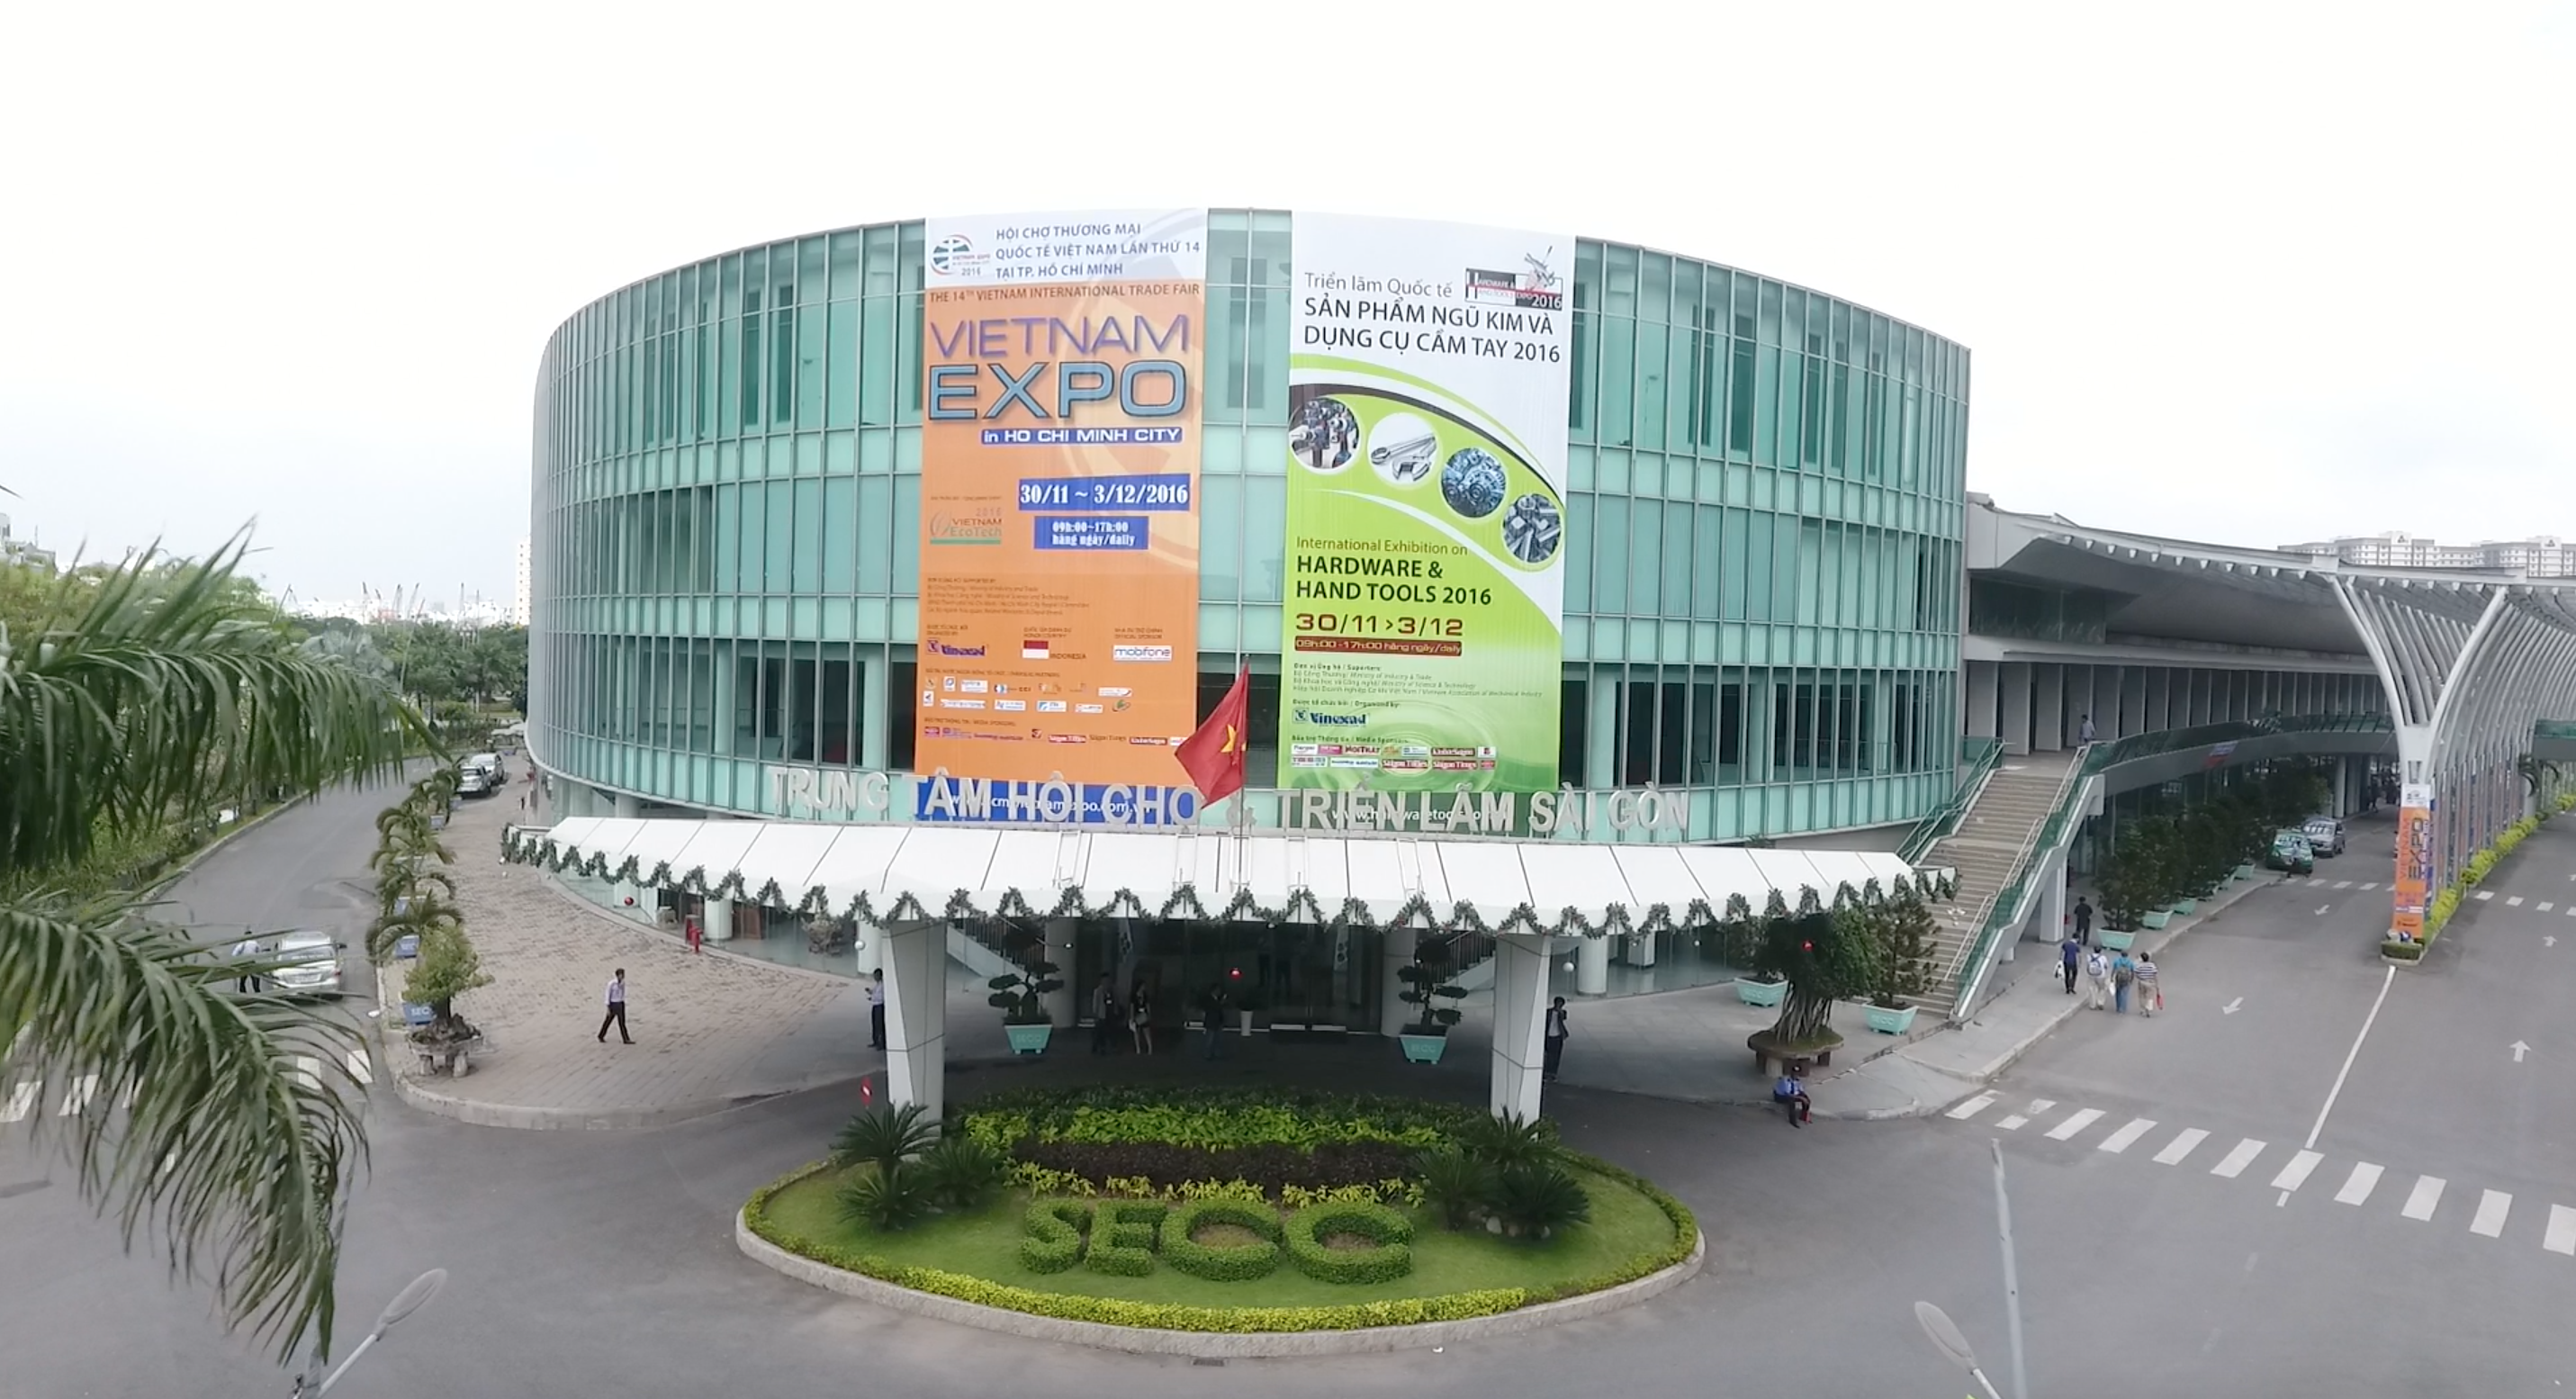 vietnam expo 2017 the land of business opportunities